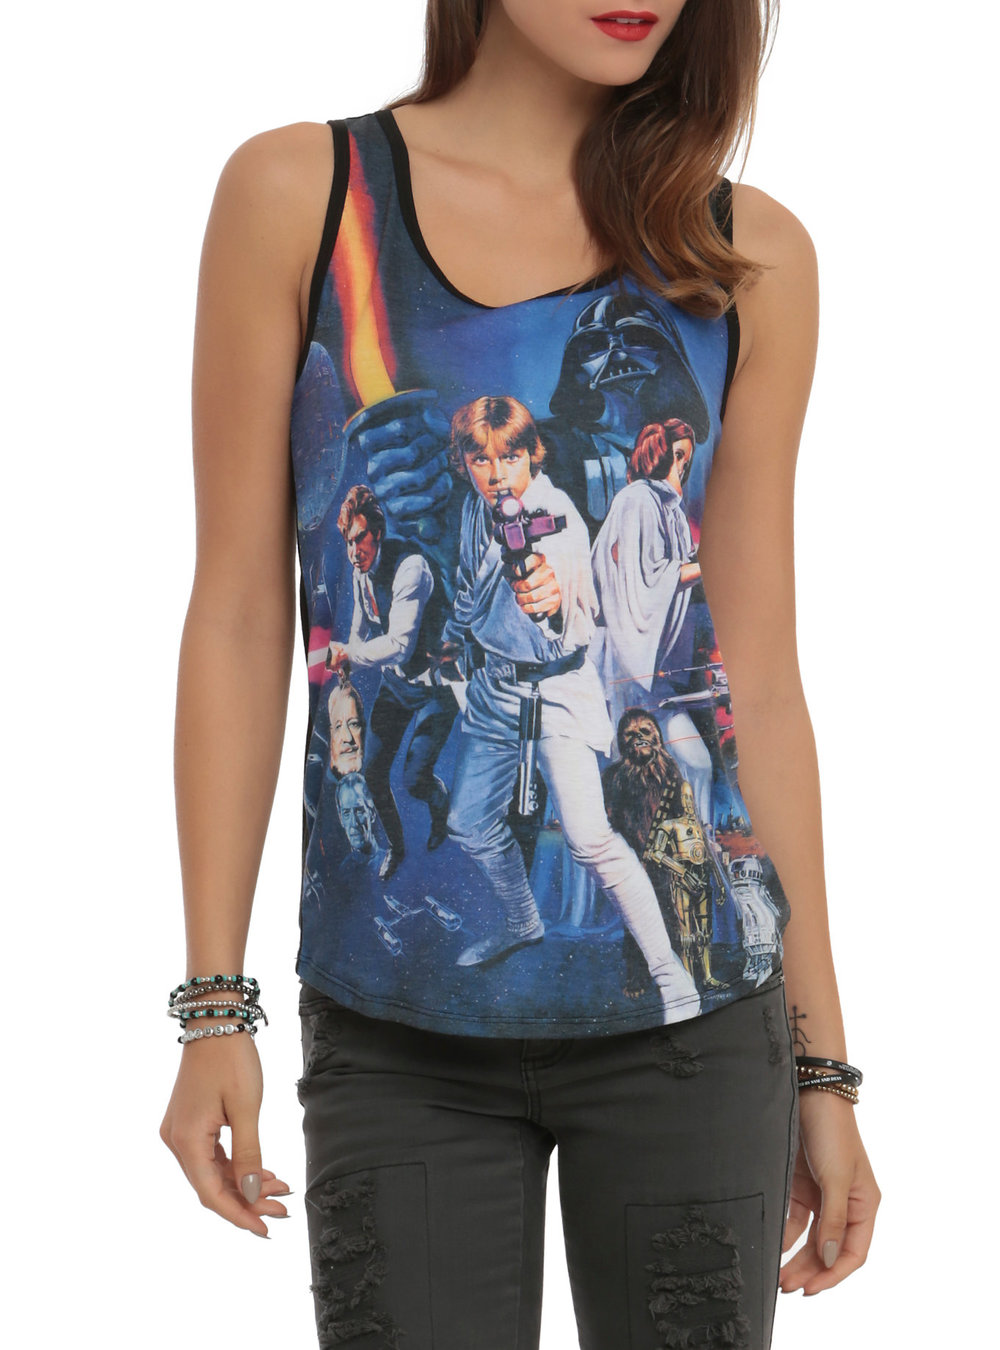 Star Wars Her Universe New Hope Muscle Shirt. Hot Topic. $24-28. Additional 30% off now.